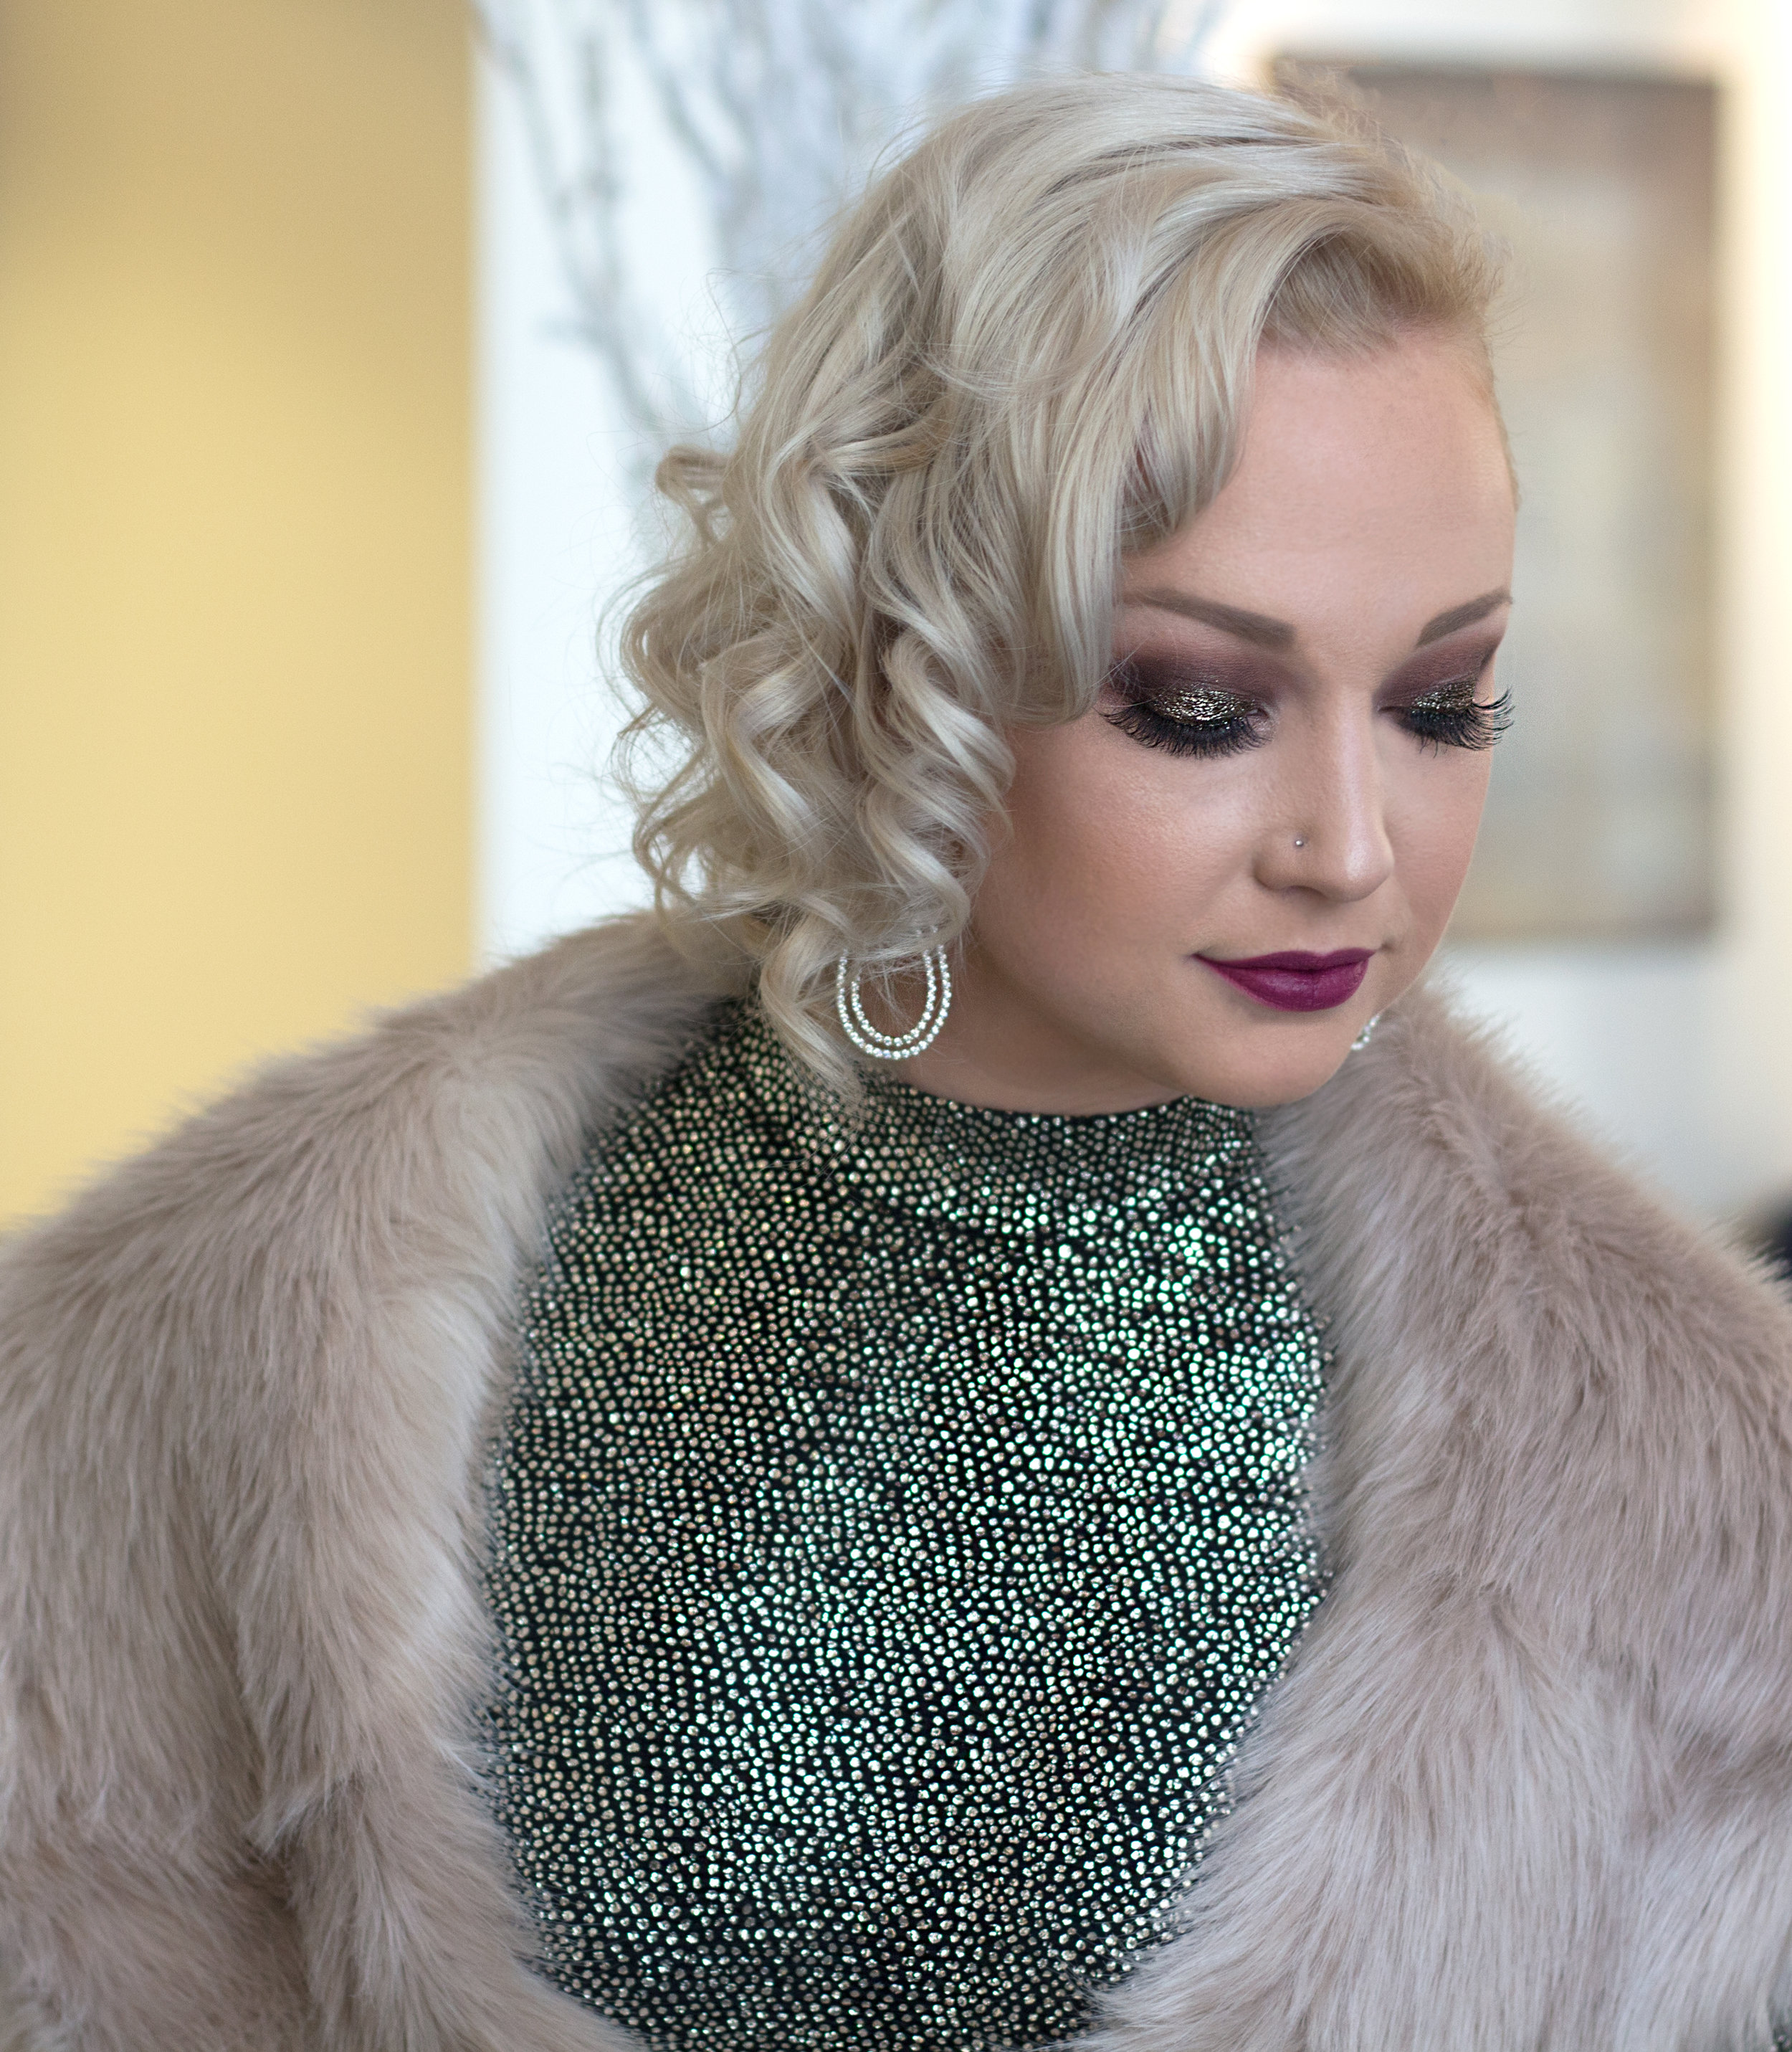 Emily Essentially | Fashion | New Year's Eve Ball Drop Chic 8